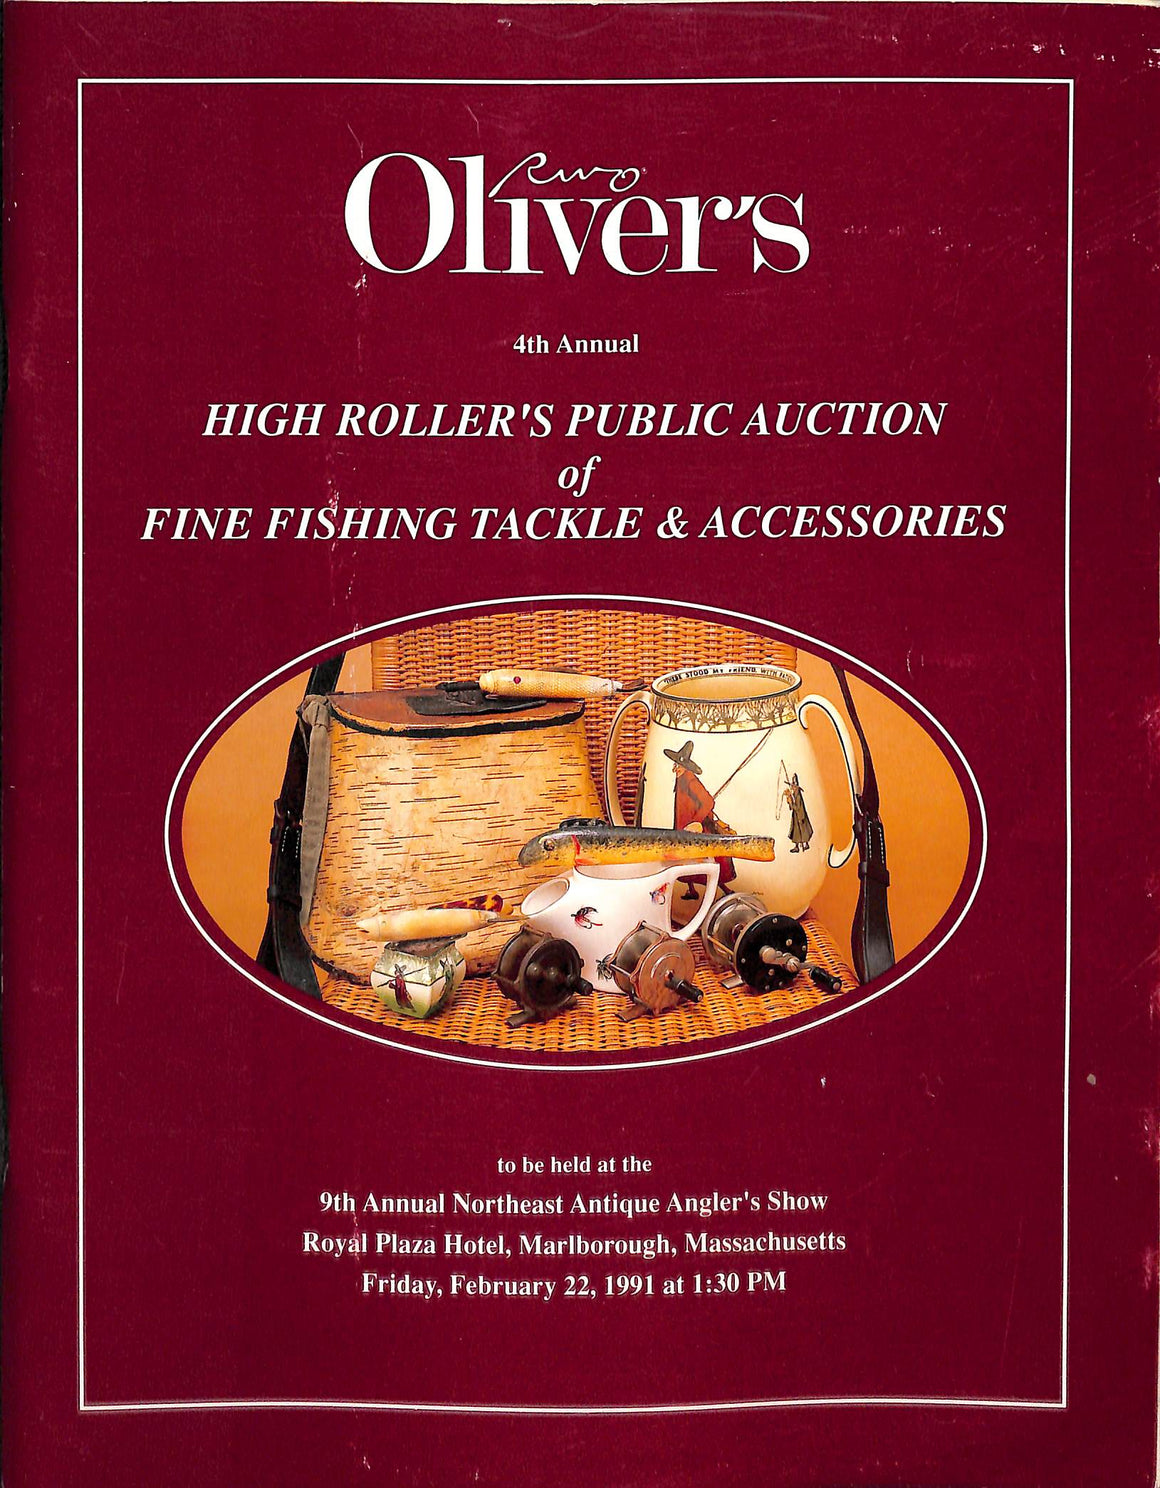 Oliver's 4th Annual High Roller's Public Auction of Fine Fishing Tackle & Accessories